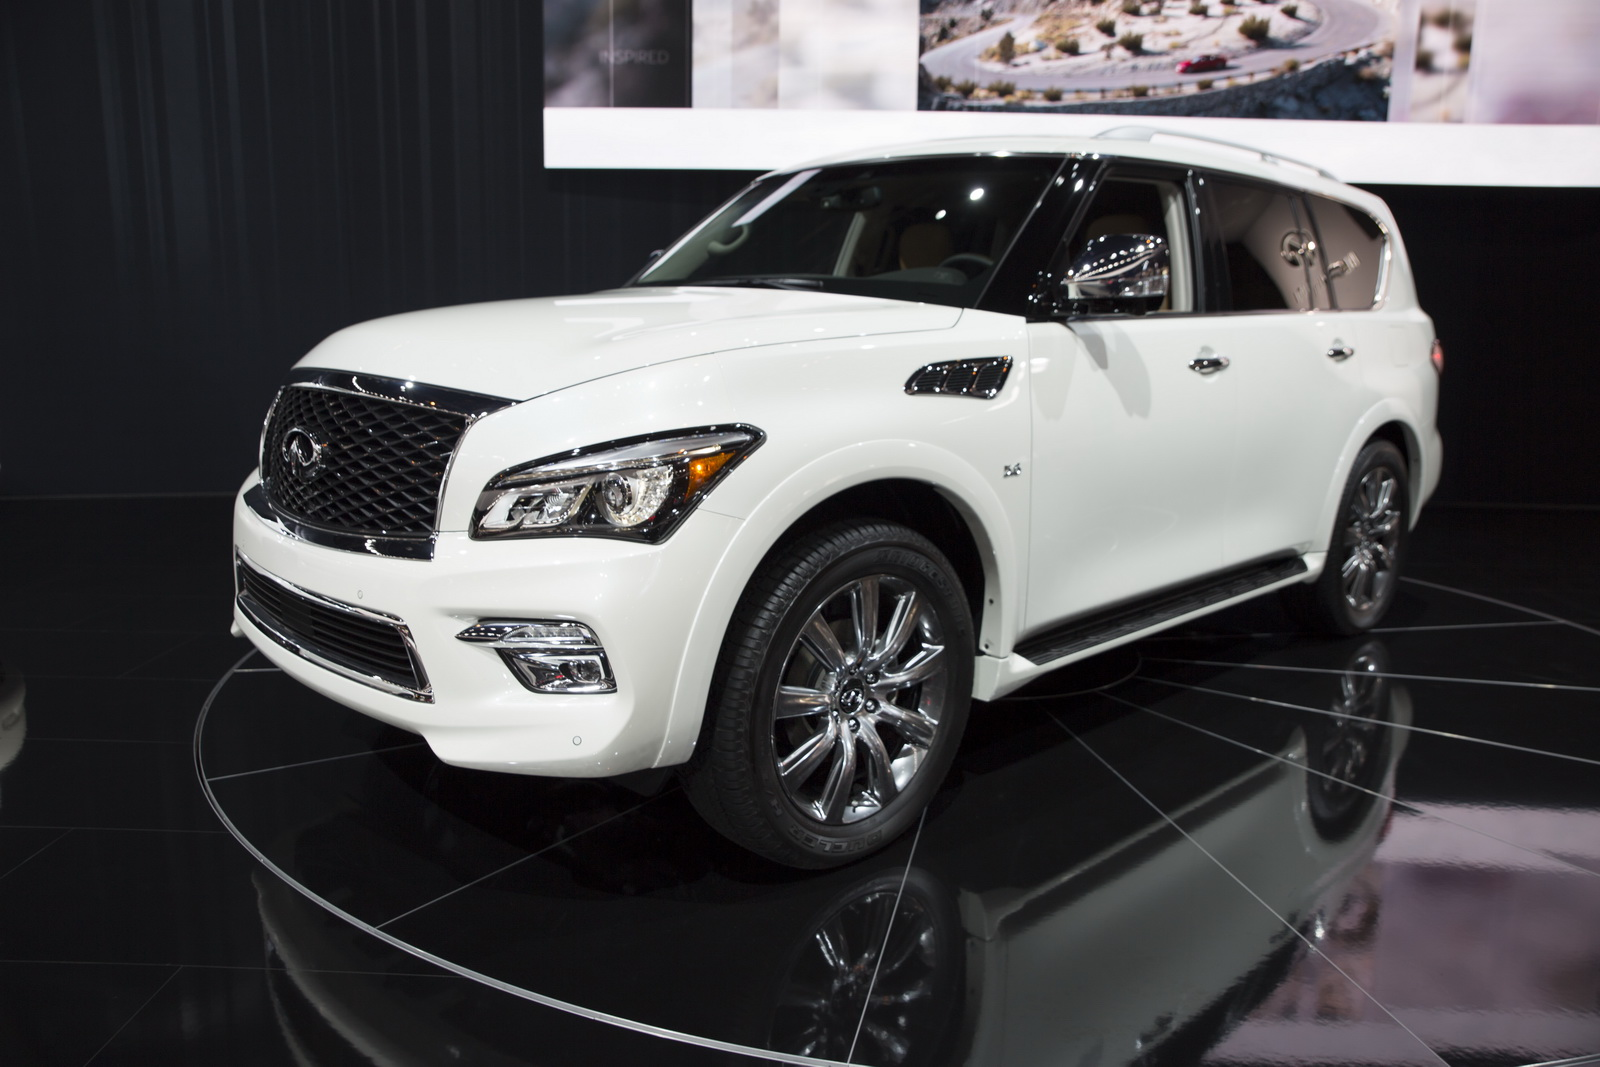 infiniti qx80 signature edition comes full of toys starts from 68 330. Black Bedroom Furniture Sets. Home Design Ideas